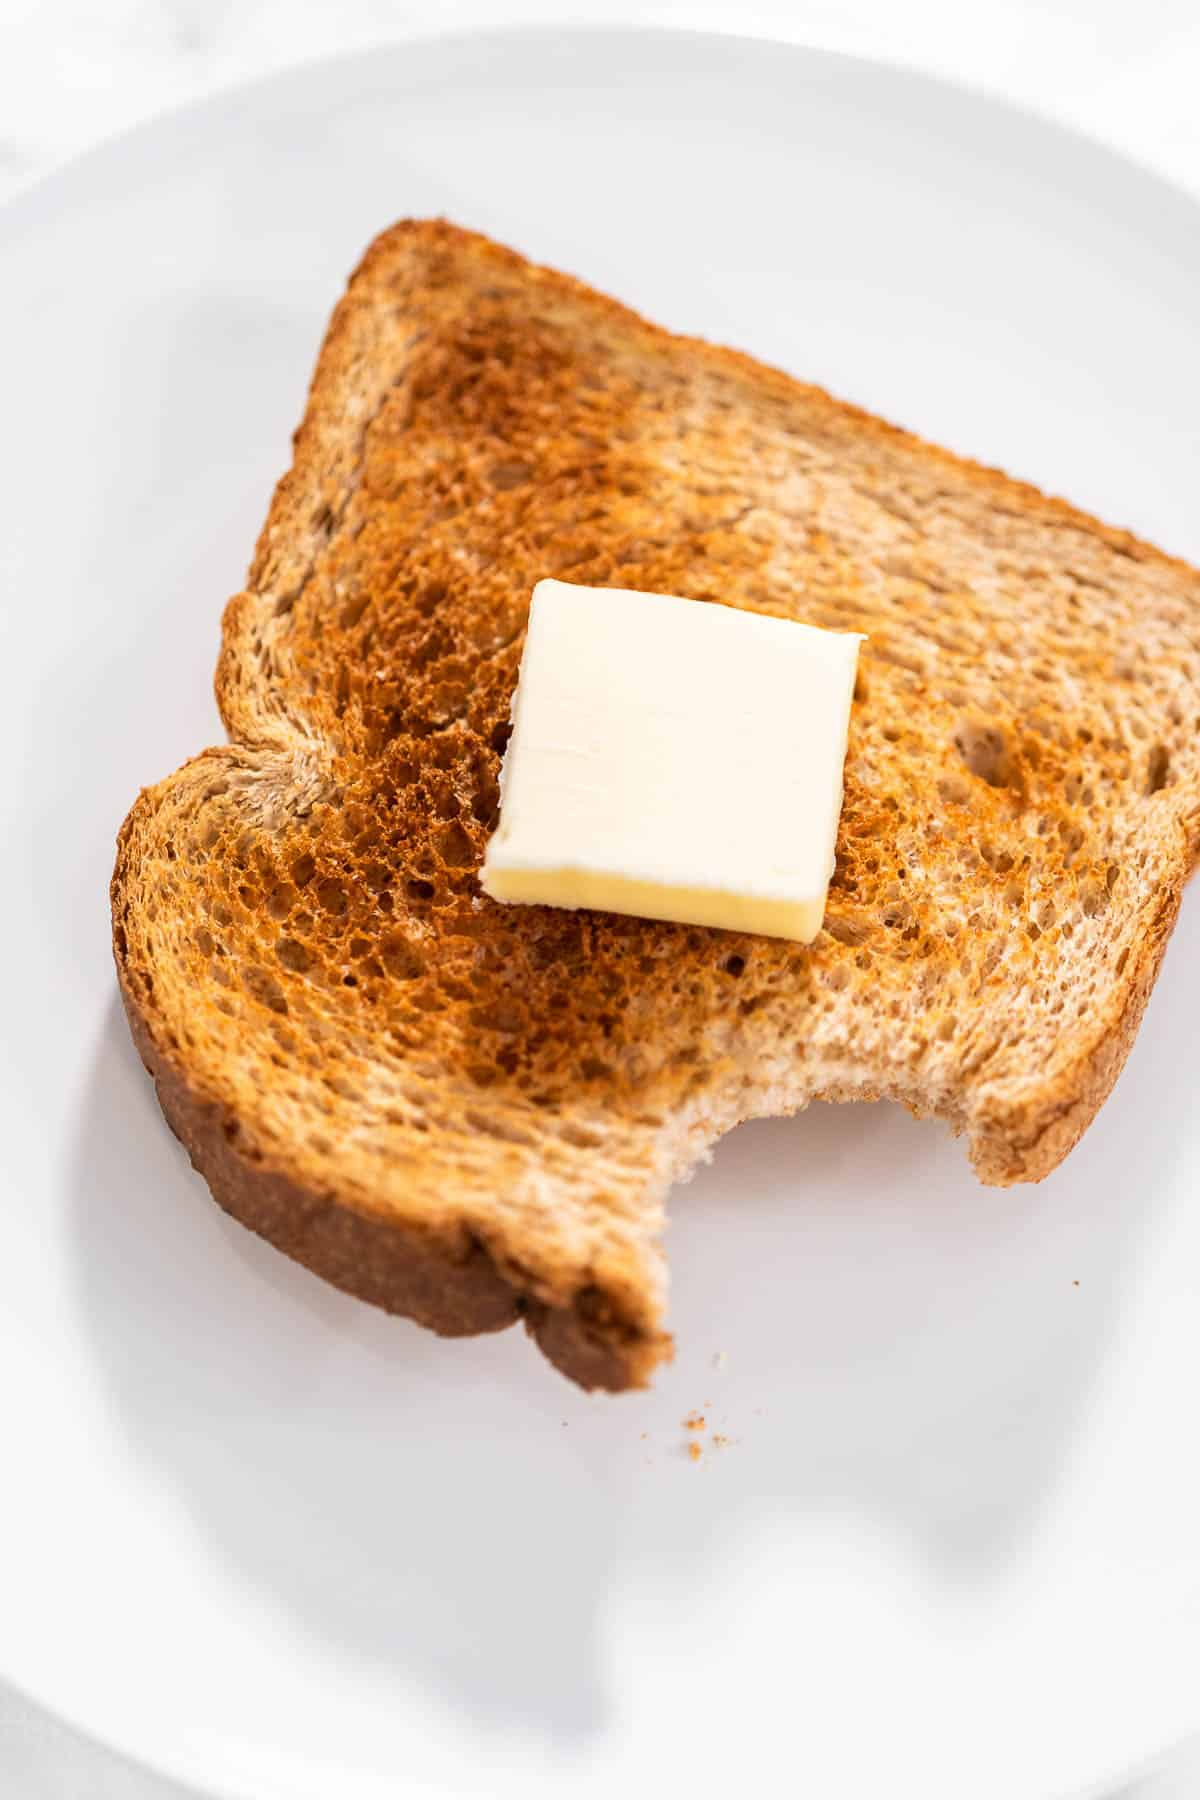 A piece of air fryer toast with a pat of butter on top with a bite taken out of it.